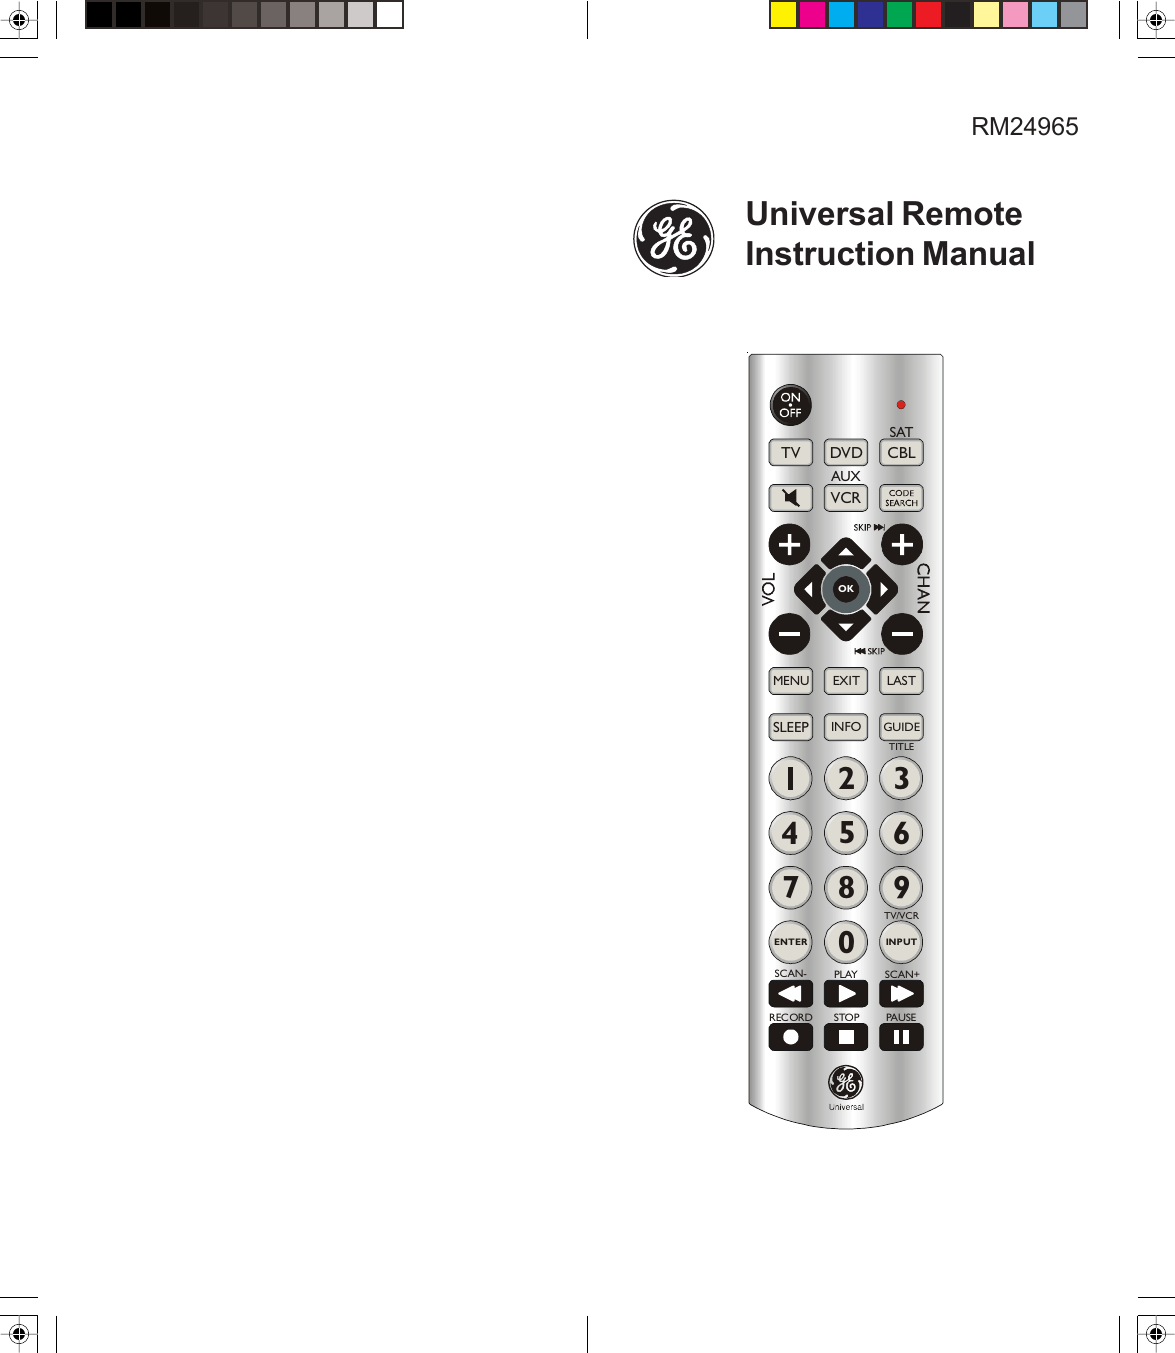 Ge Appliances 24965 Universal Remote Owners Manual RM24965